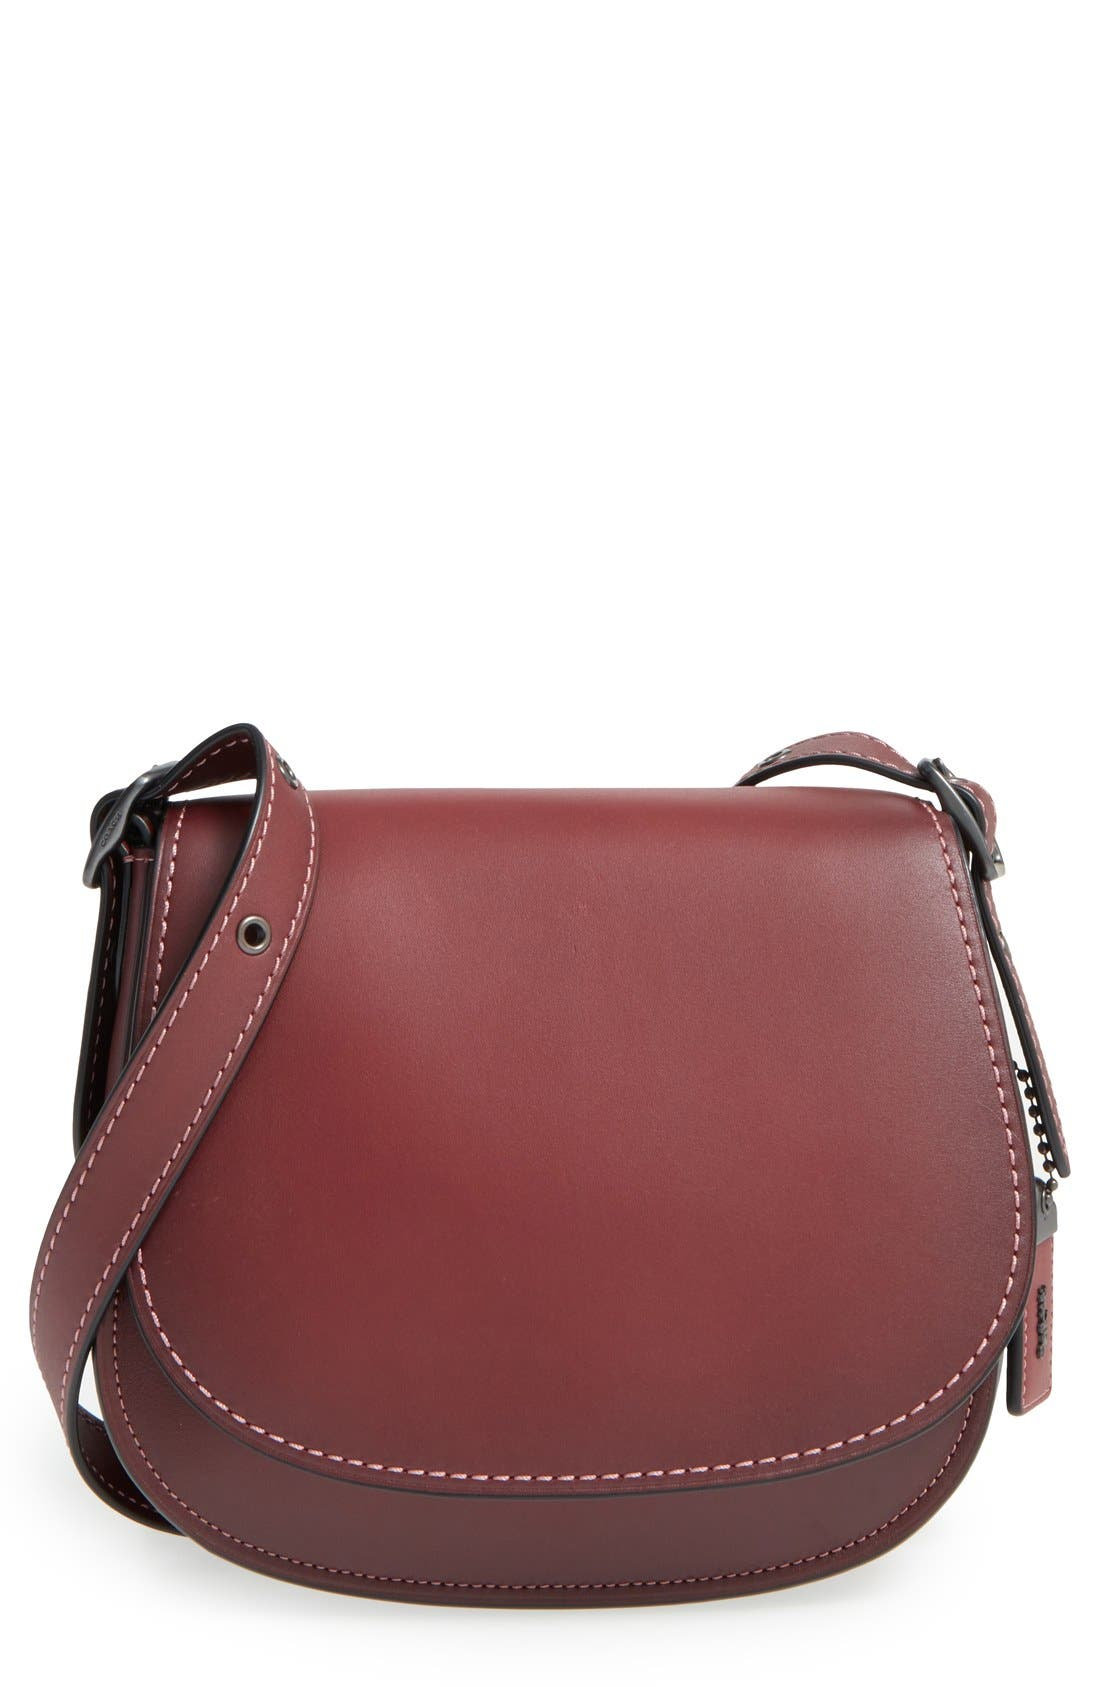 Main Image - COACH 1941 '23' Leather Saddle Bag